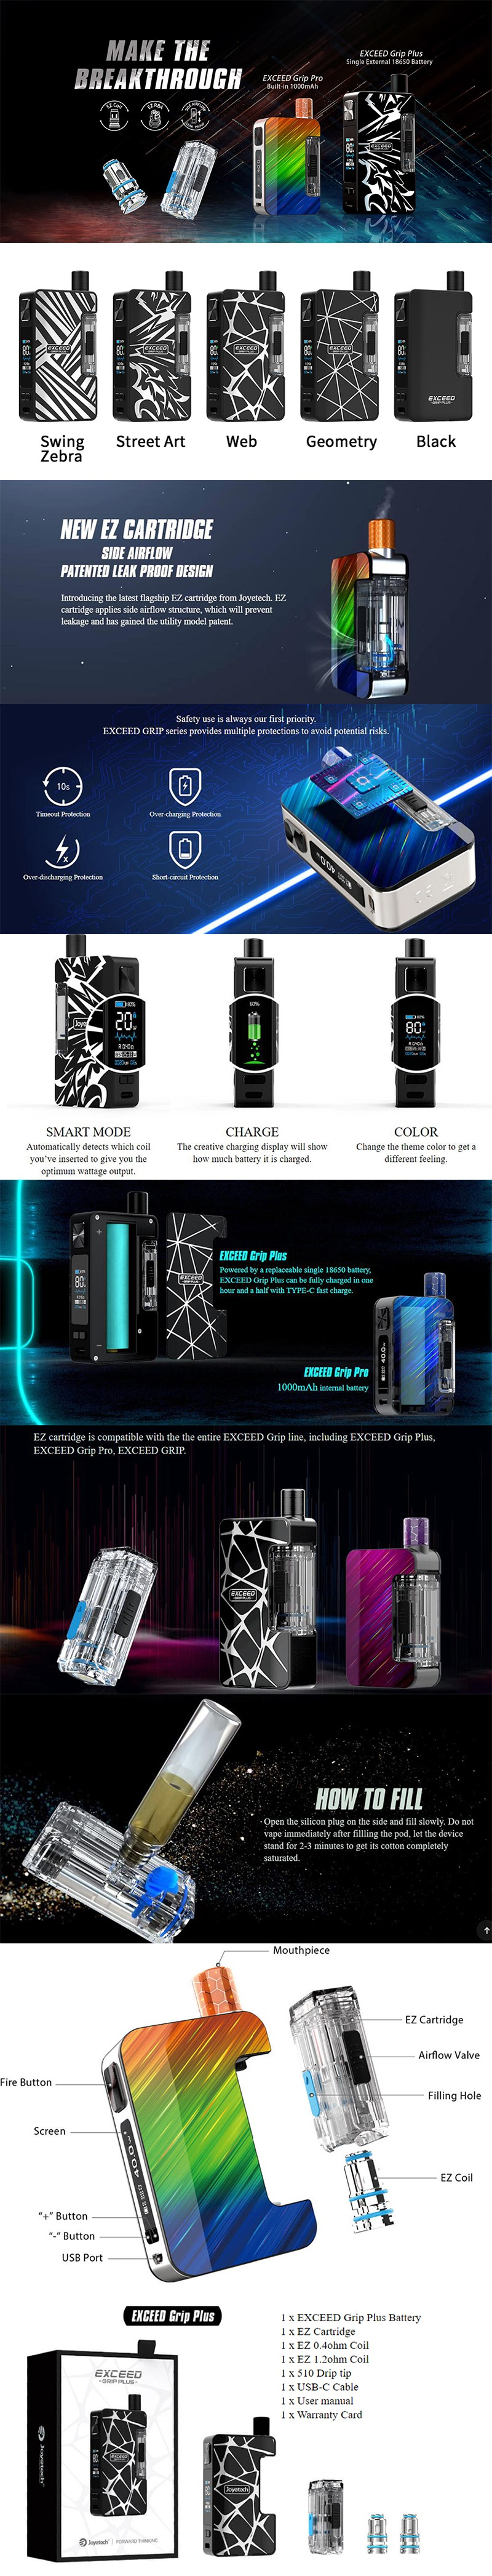 Joyetech Exceed Grip Plus 80W VW Box Mod Pod System Vape Starter Kit